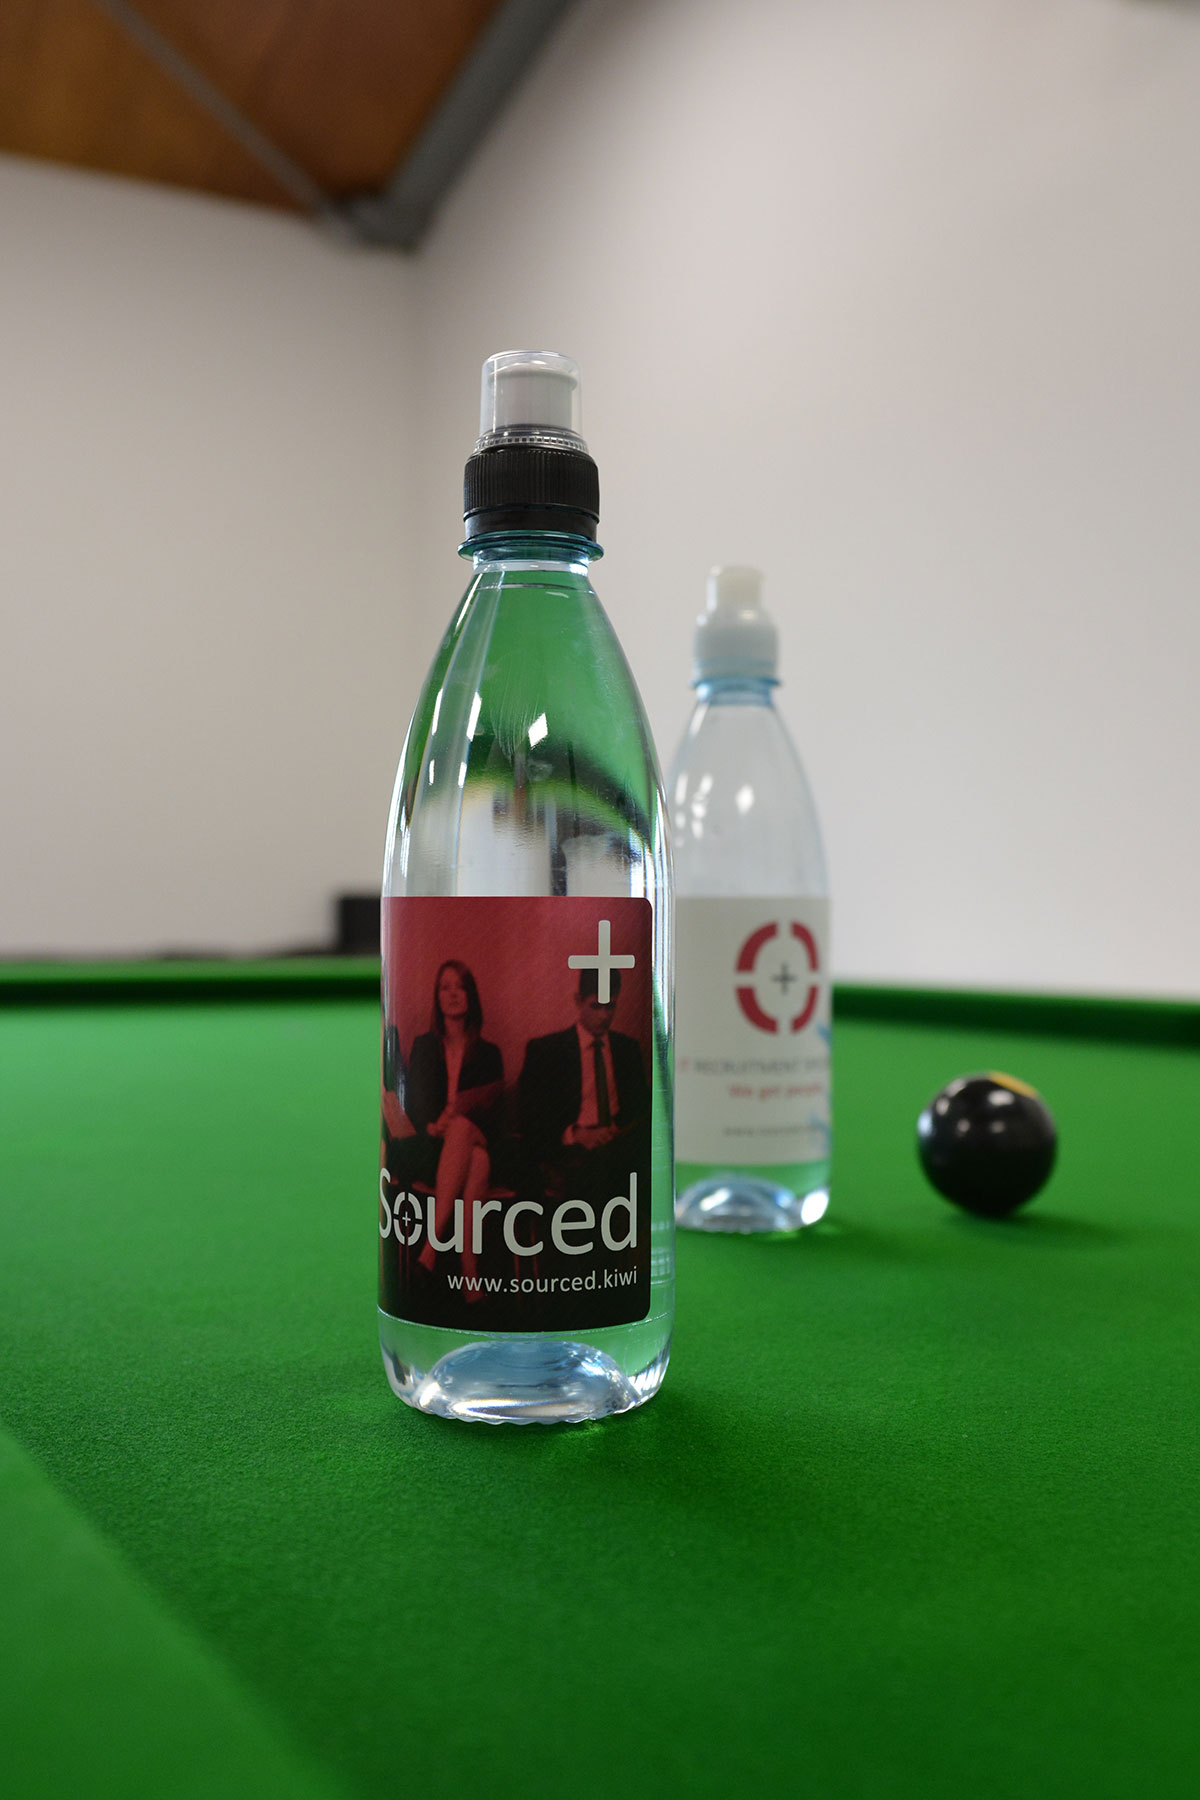 join our team at Sourced